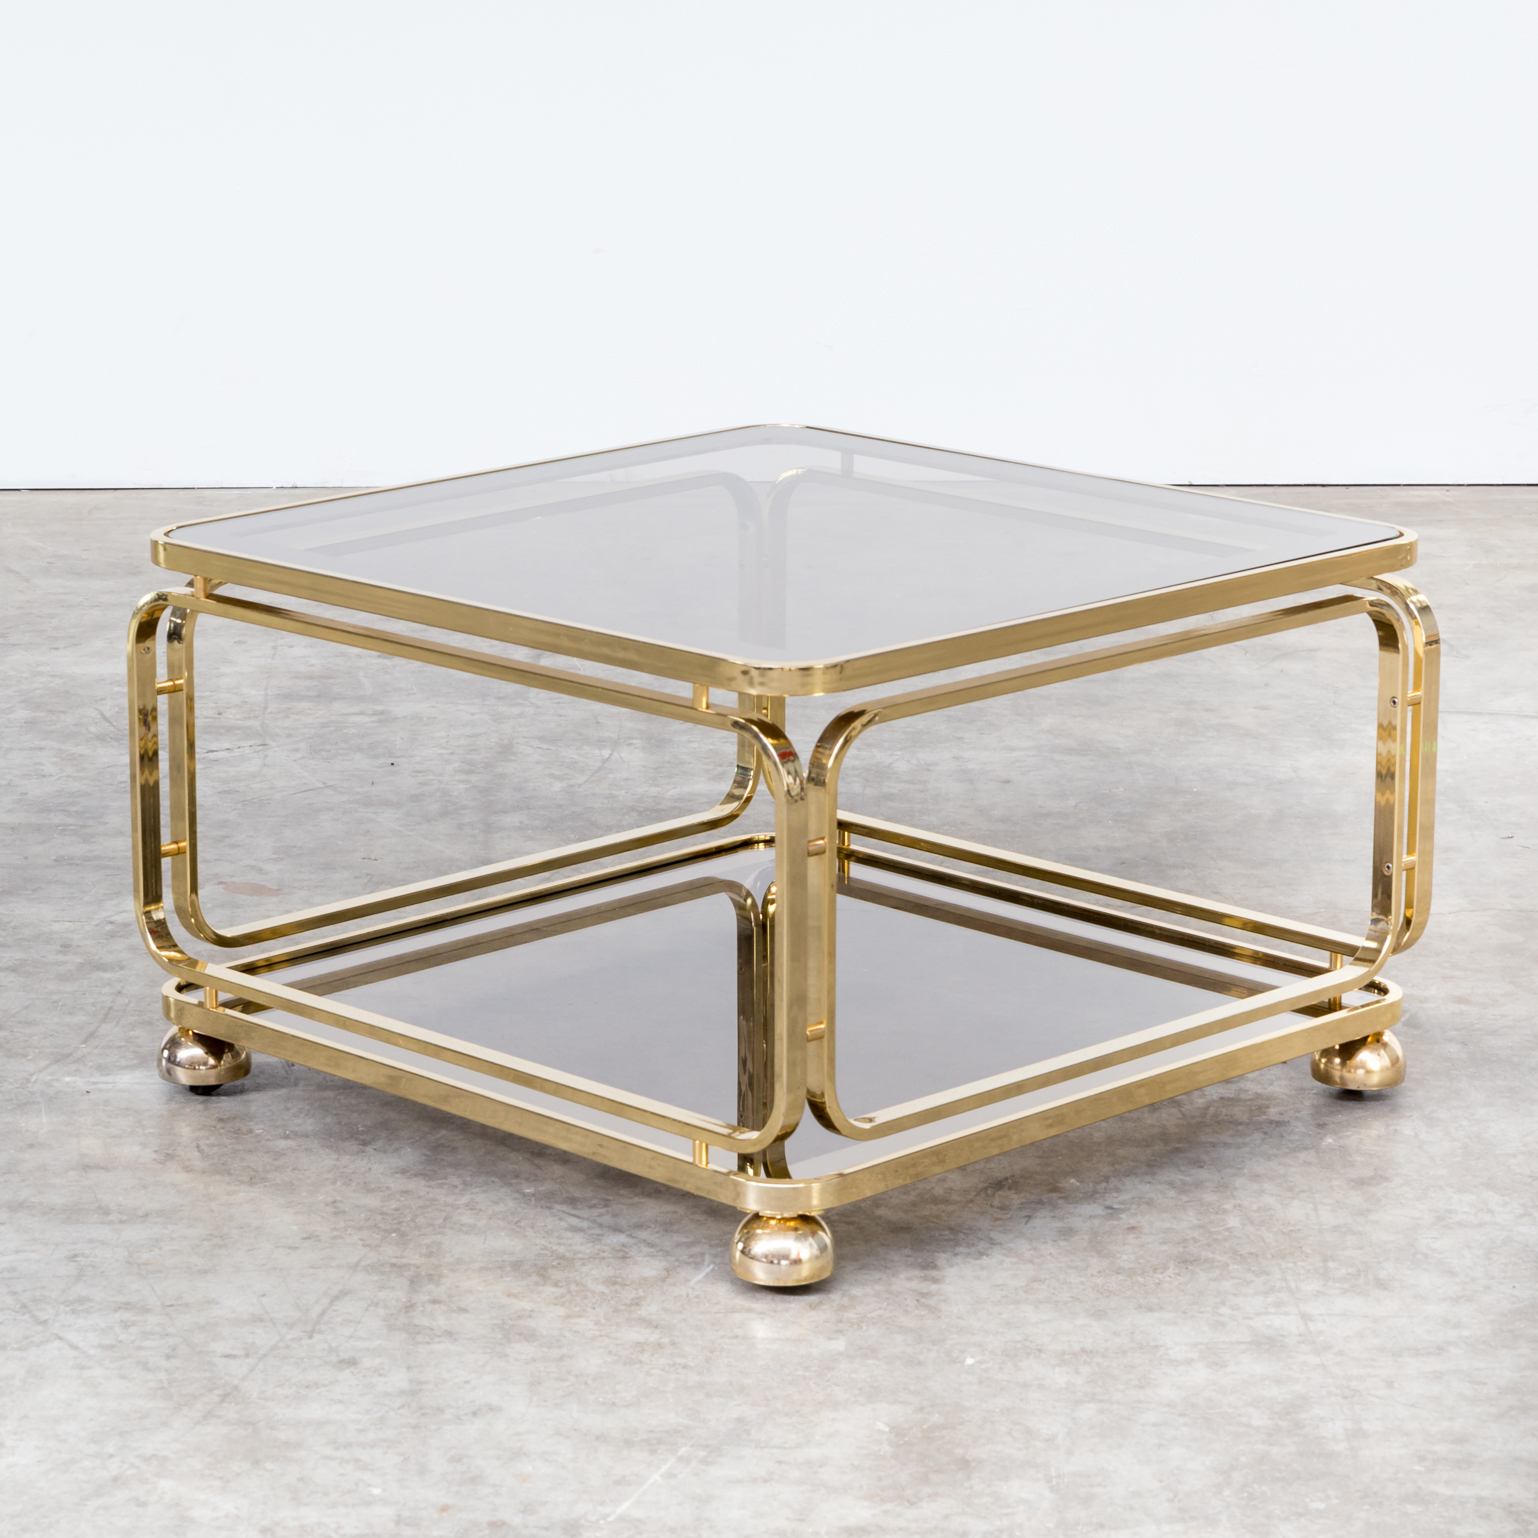 60s brass and glass coffee table side table for allegri for 60s table design